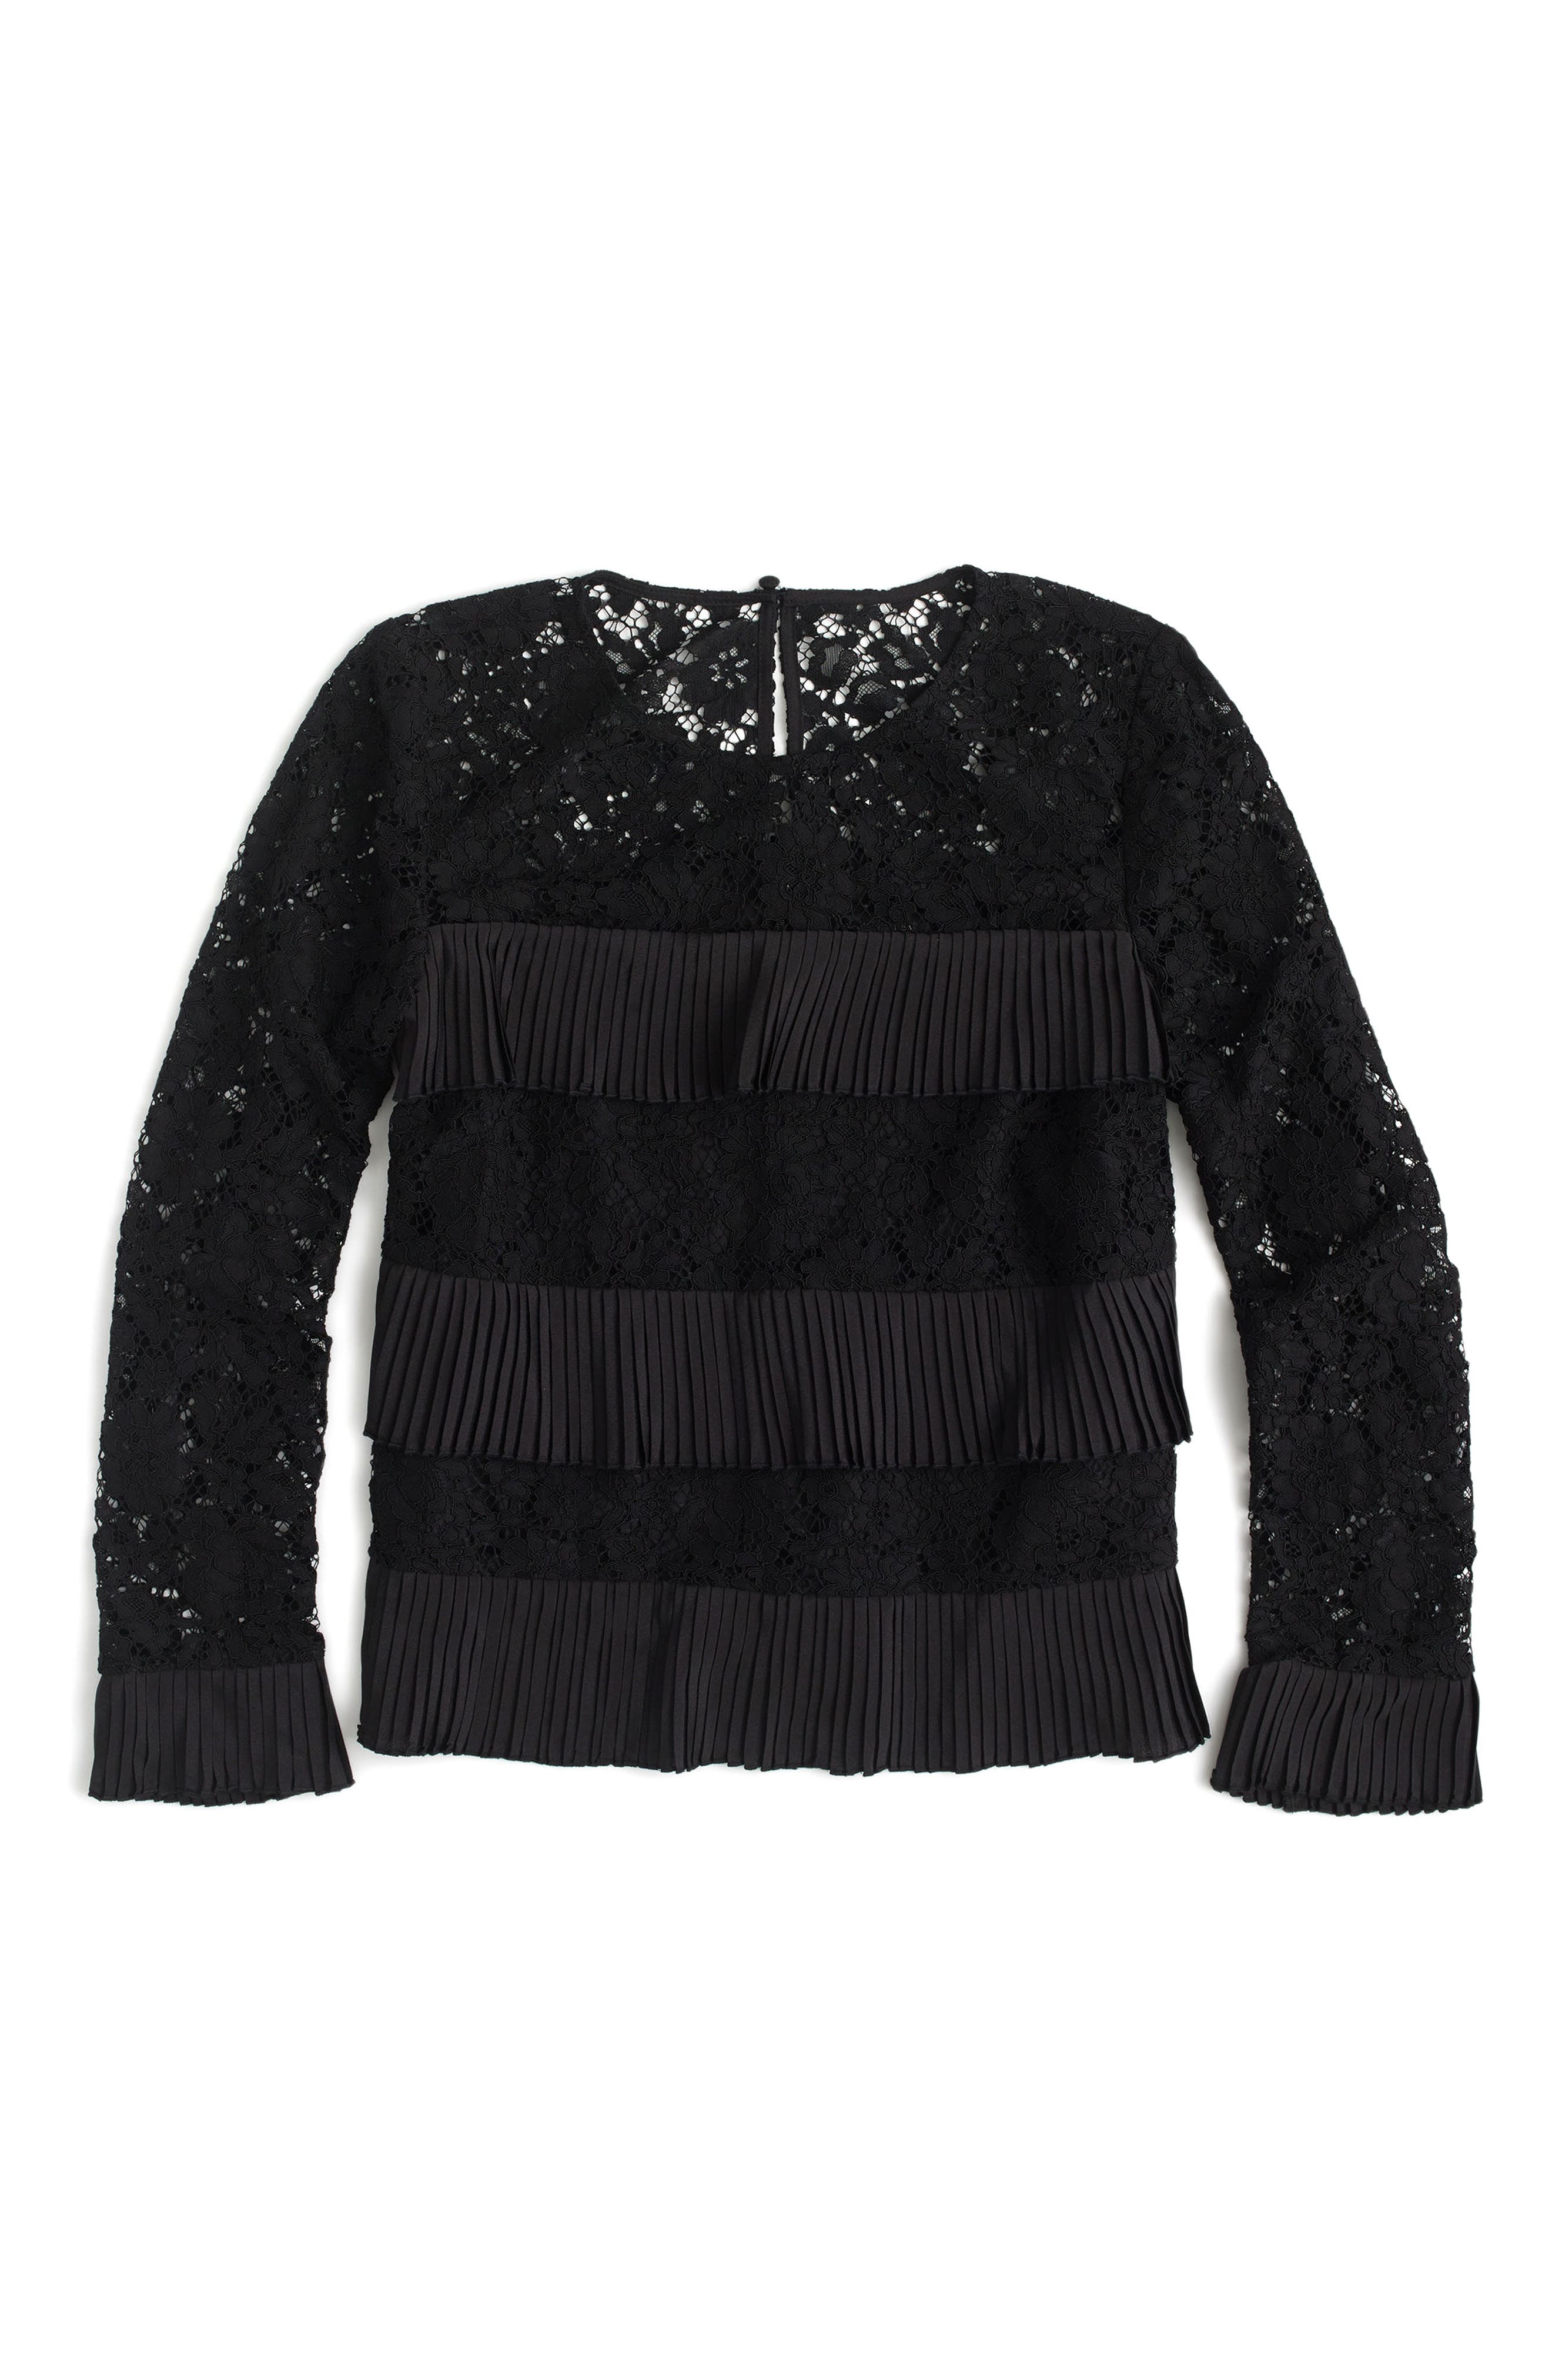 Pleated Lace Top,                             Alternate thumbnail 4, color,                             BLACK